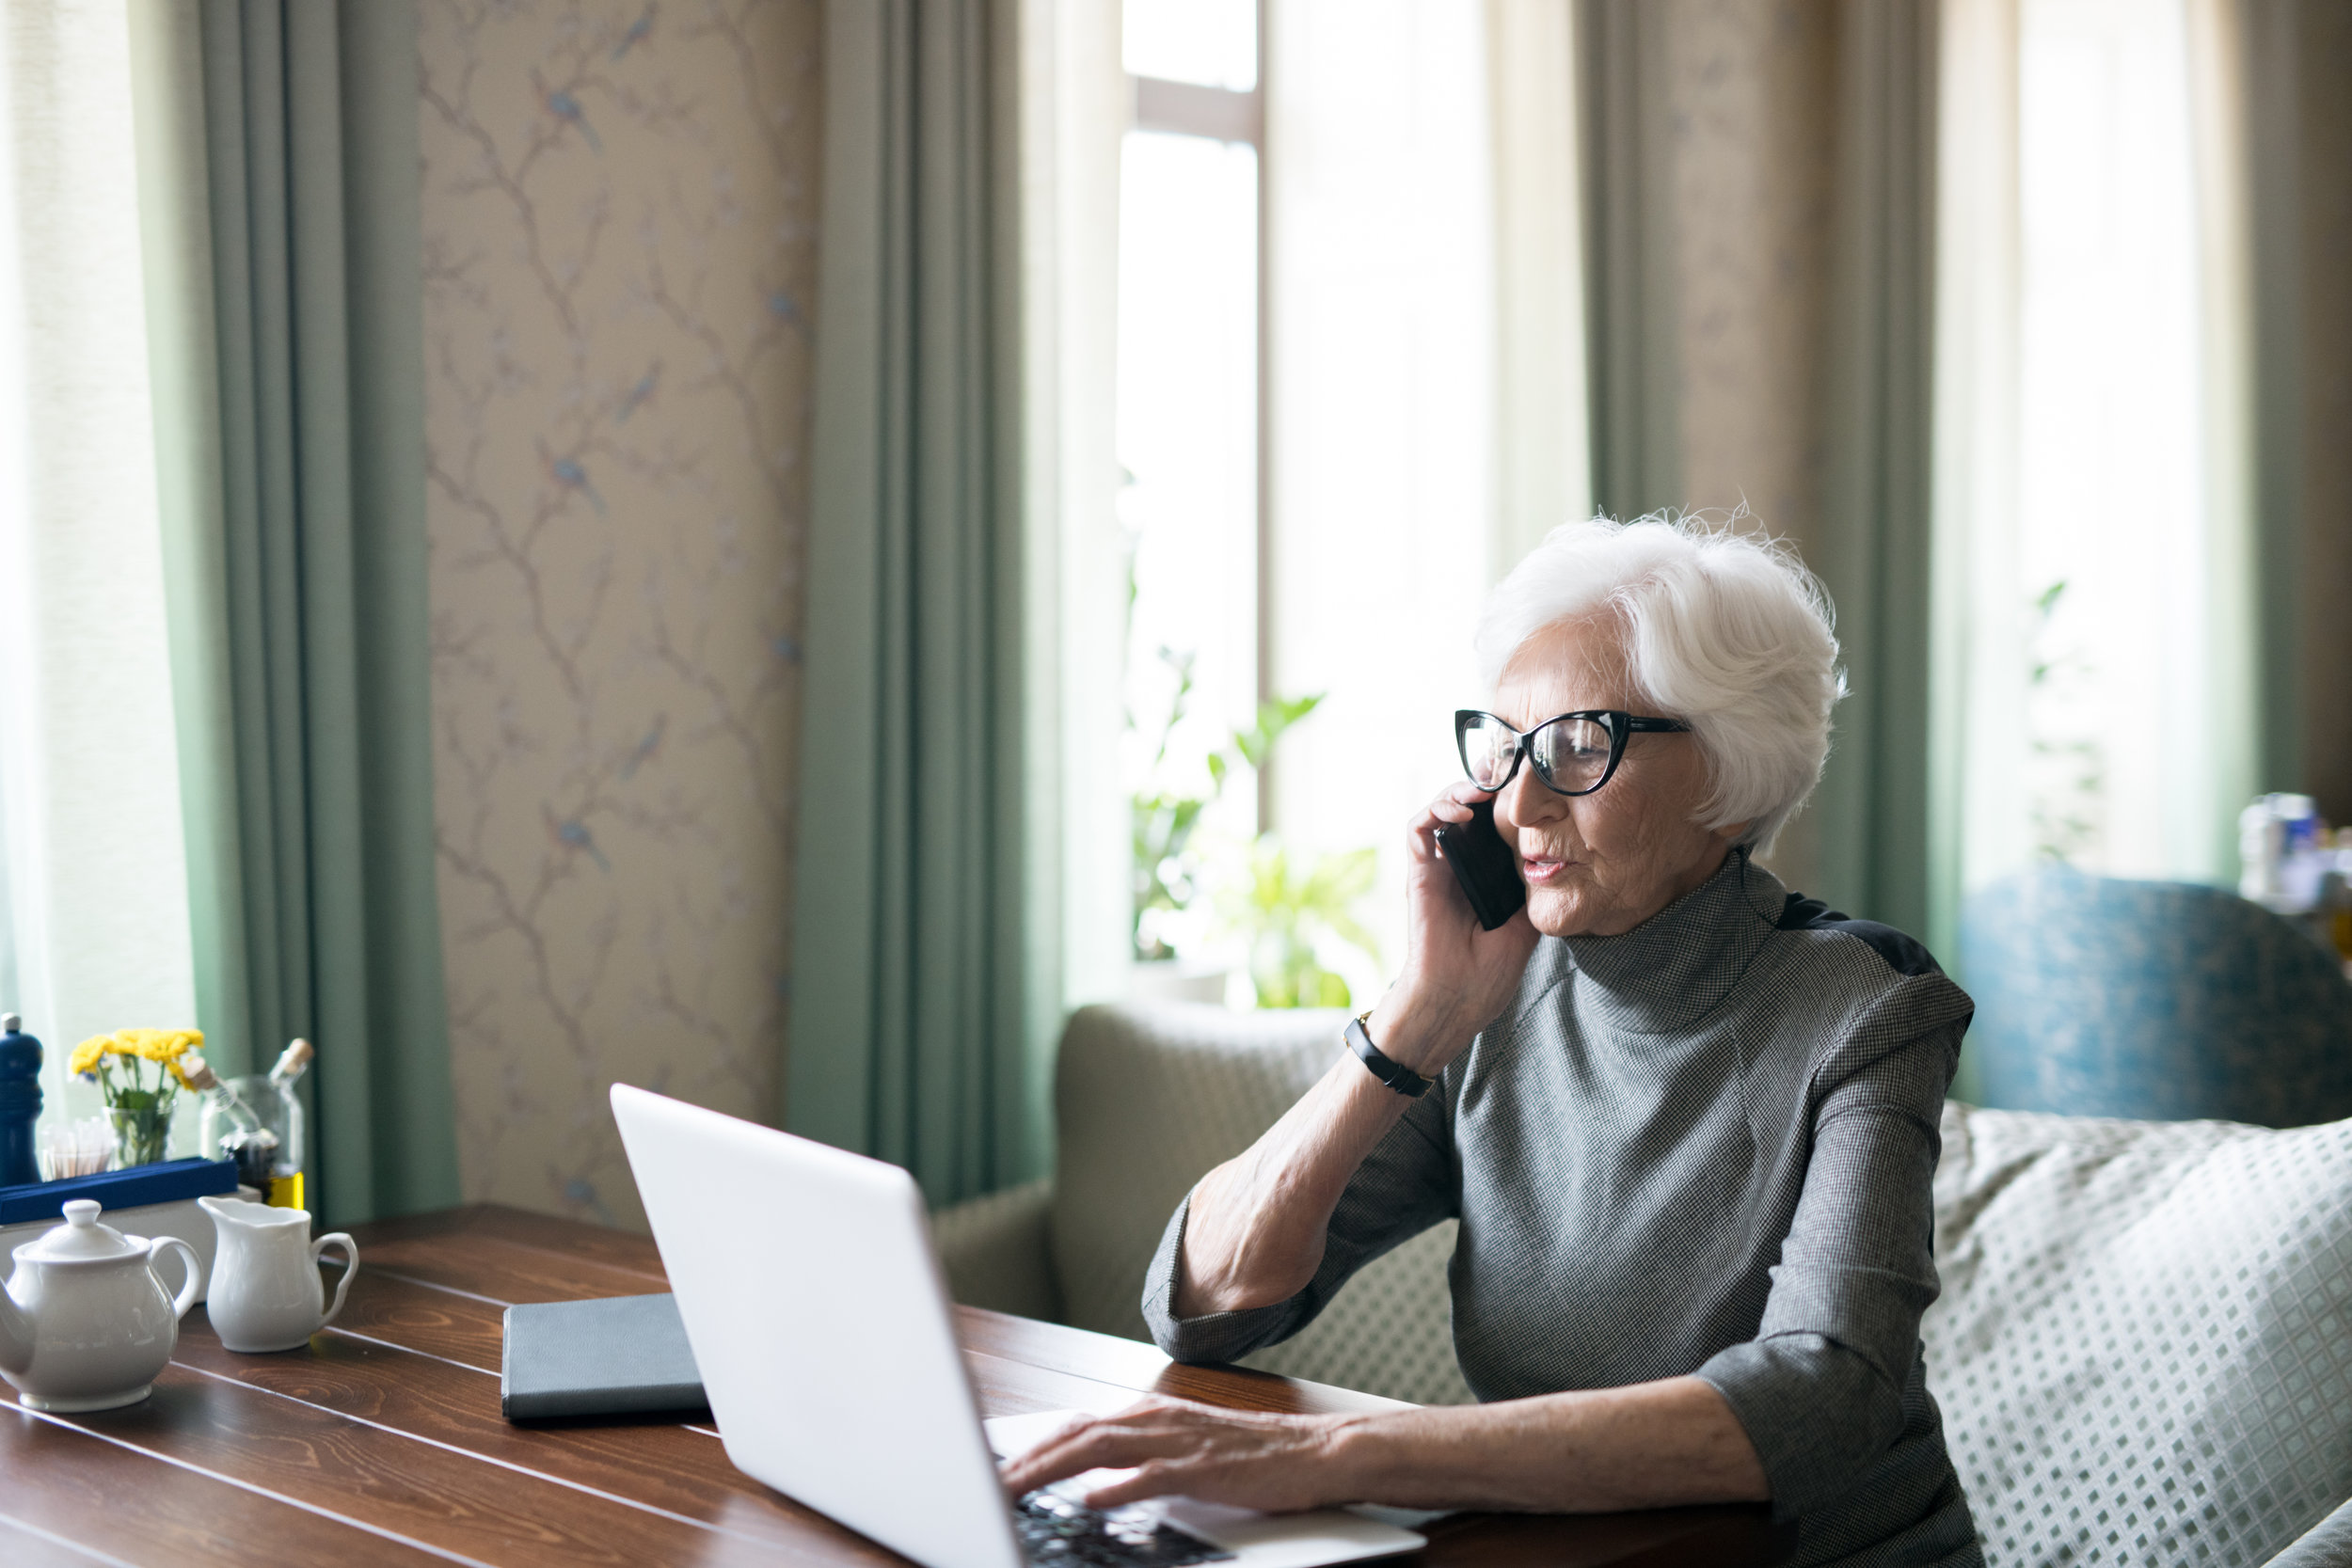 Does fintech address the issues faced by older people?